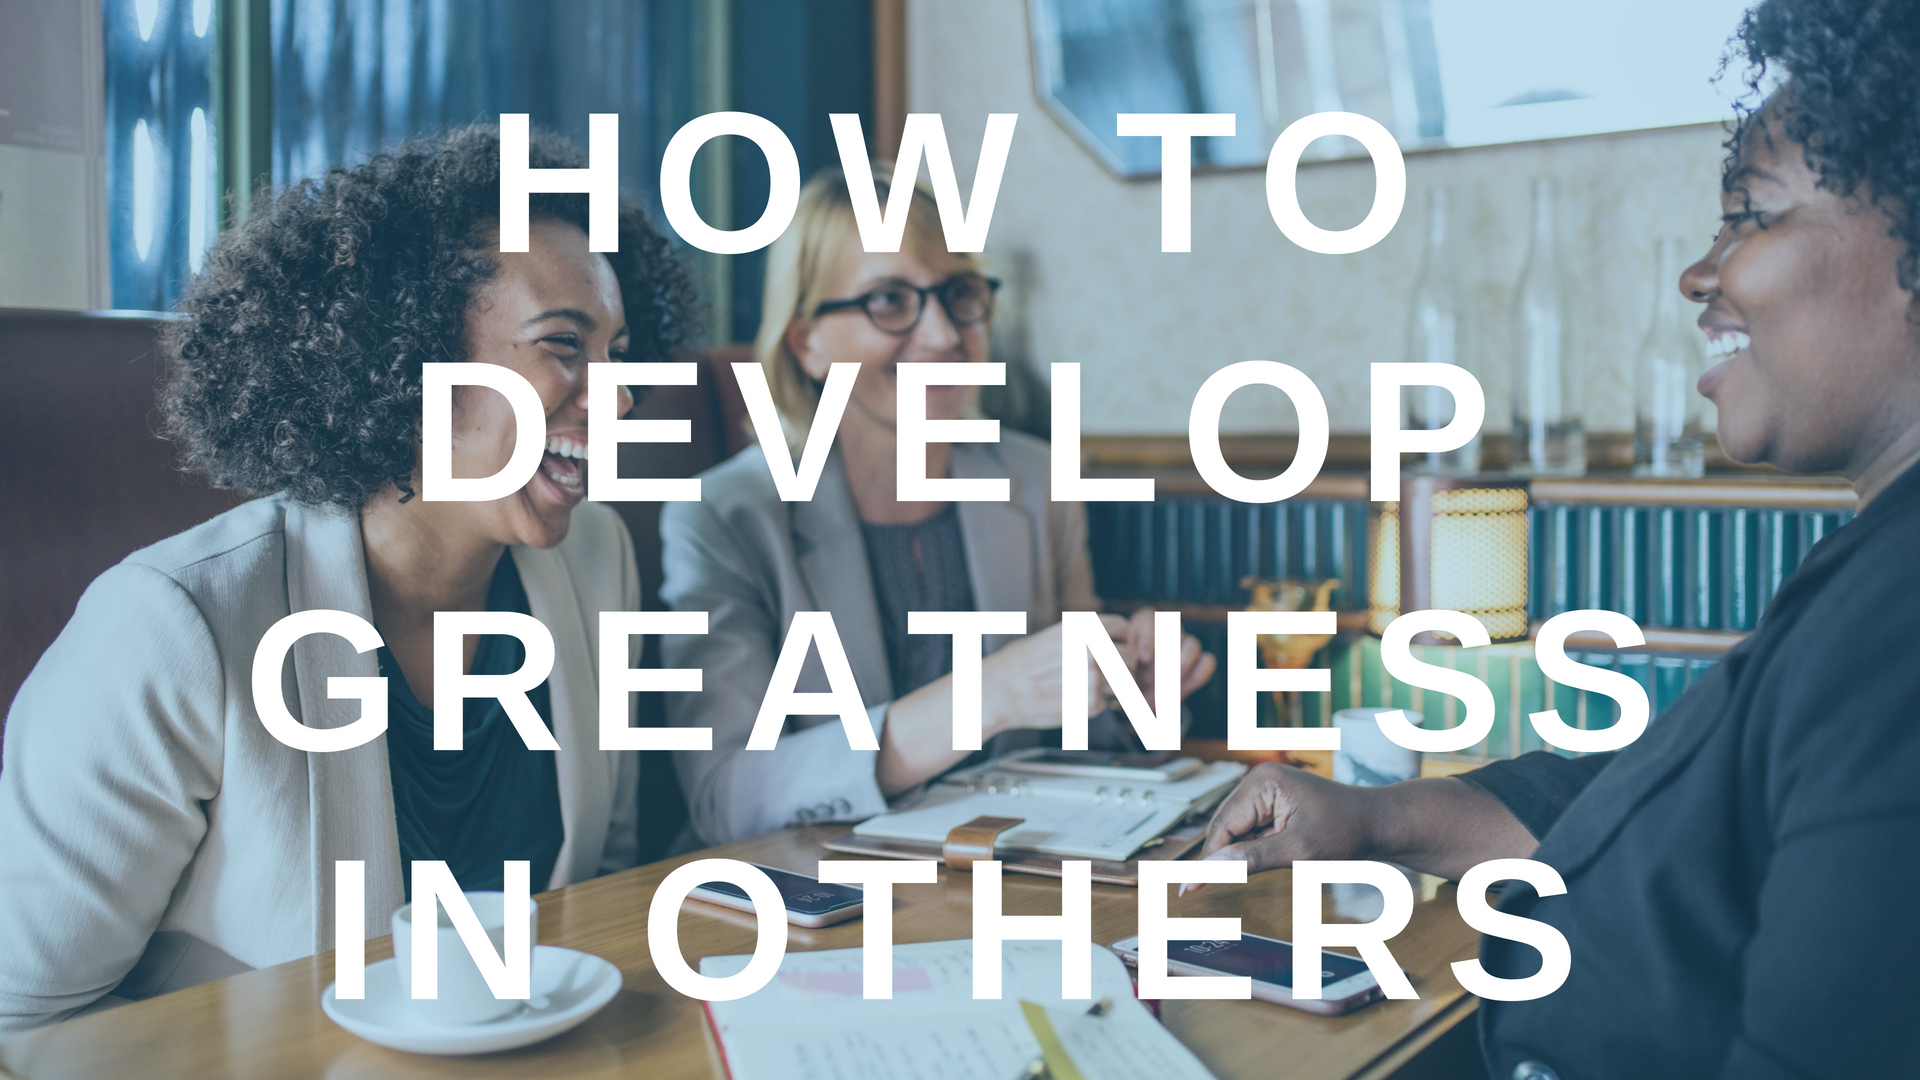 How to Develop Greatness in Others